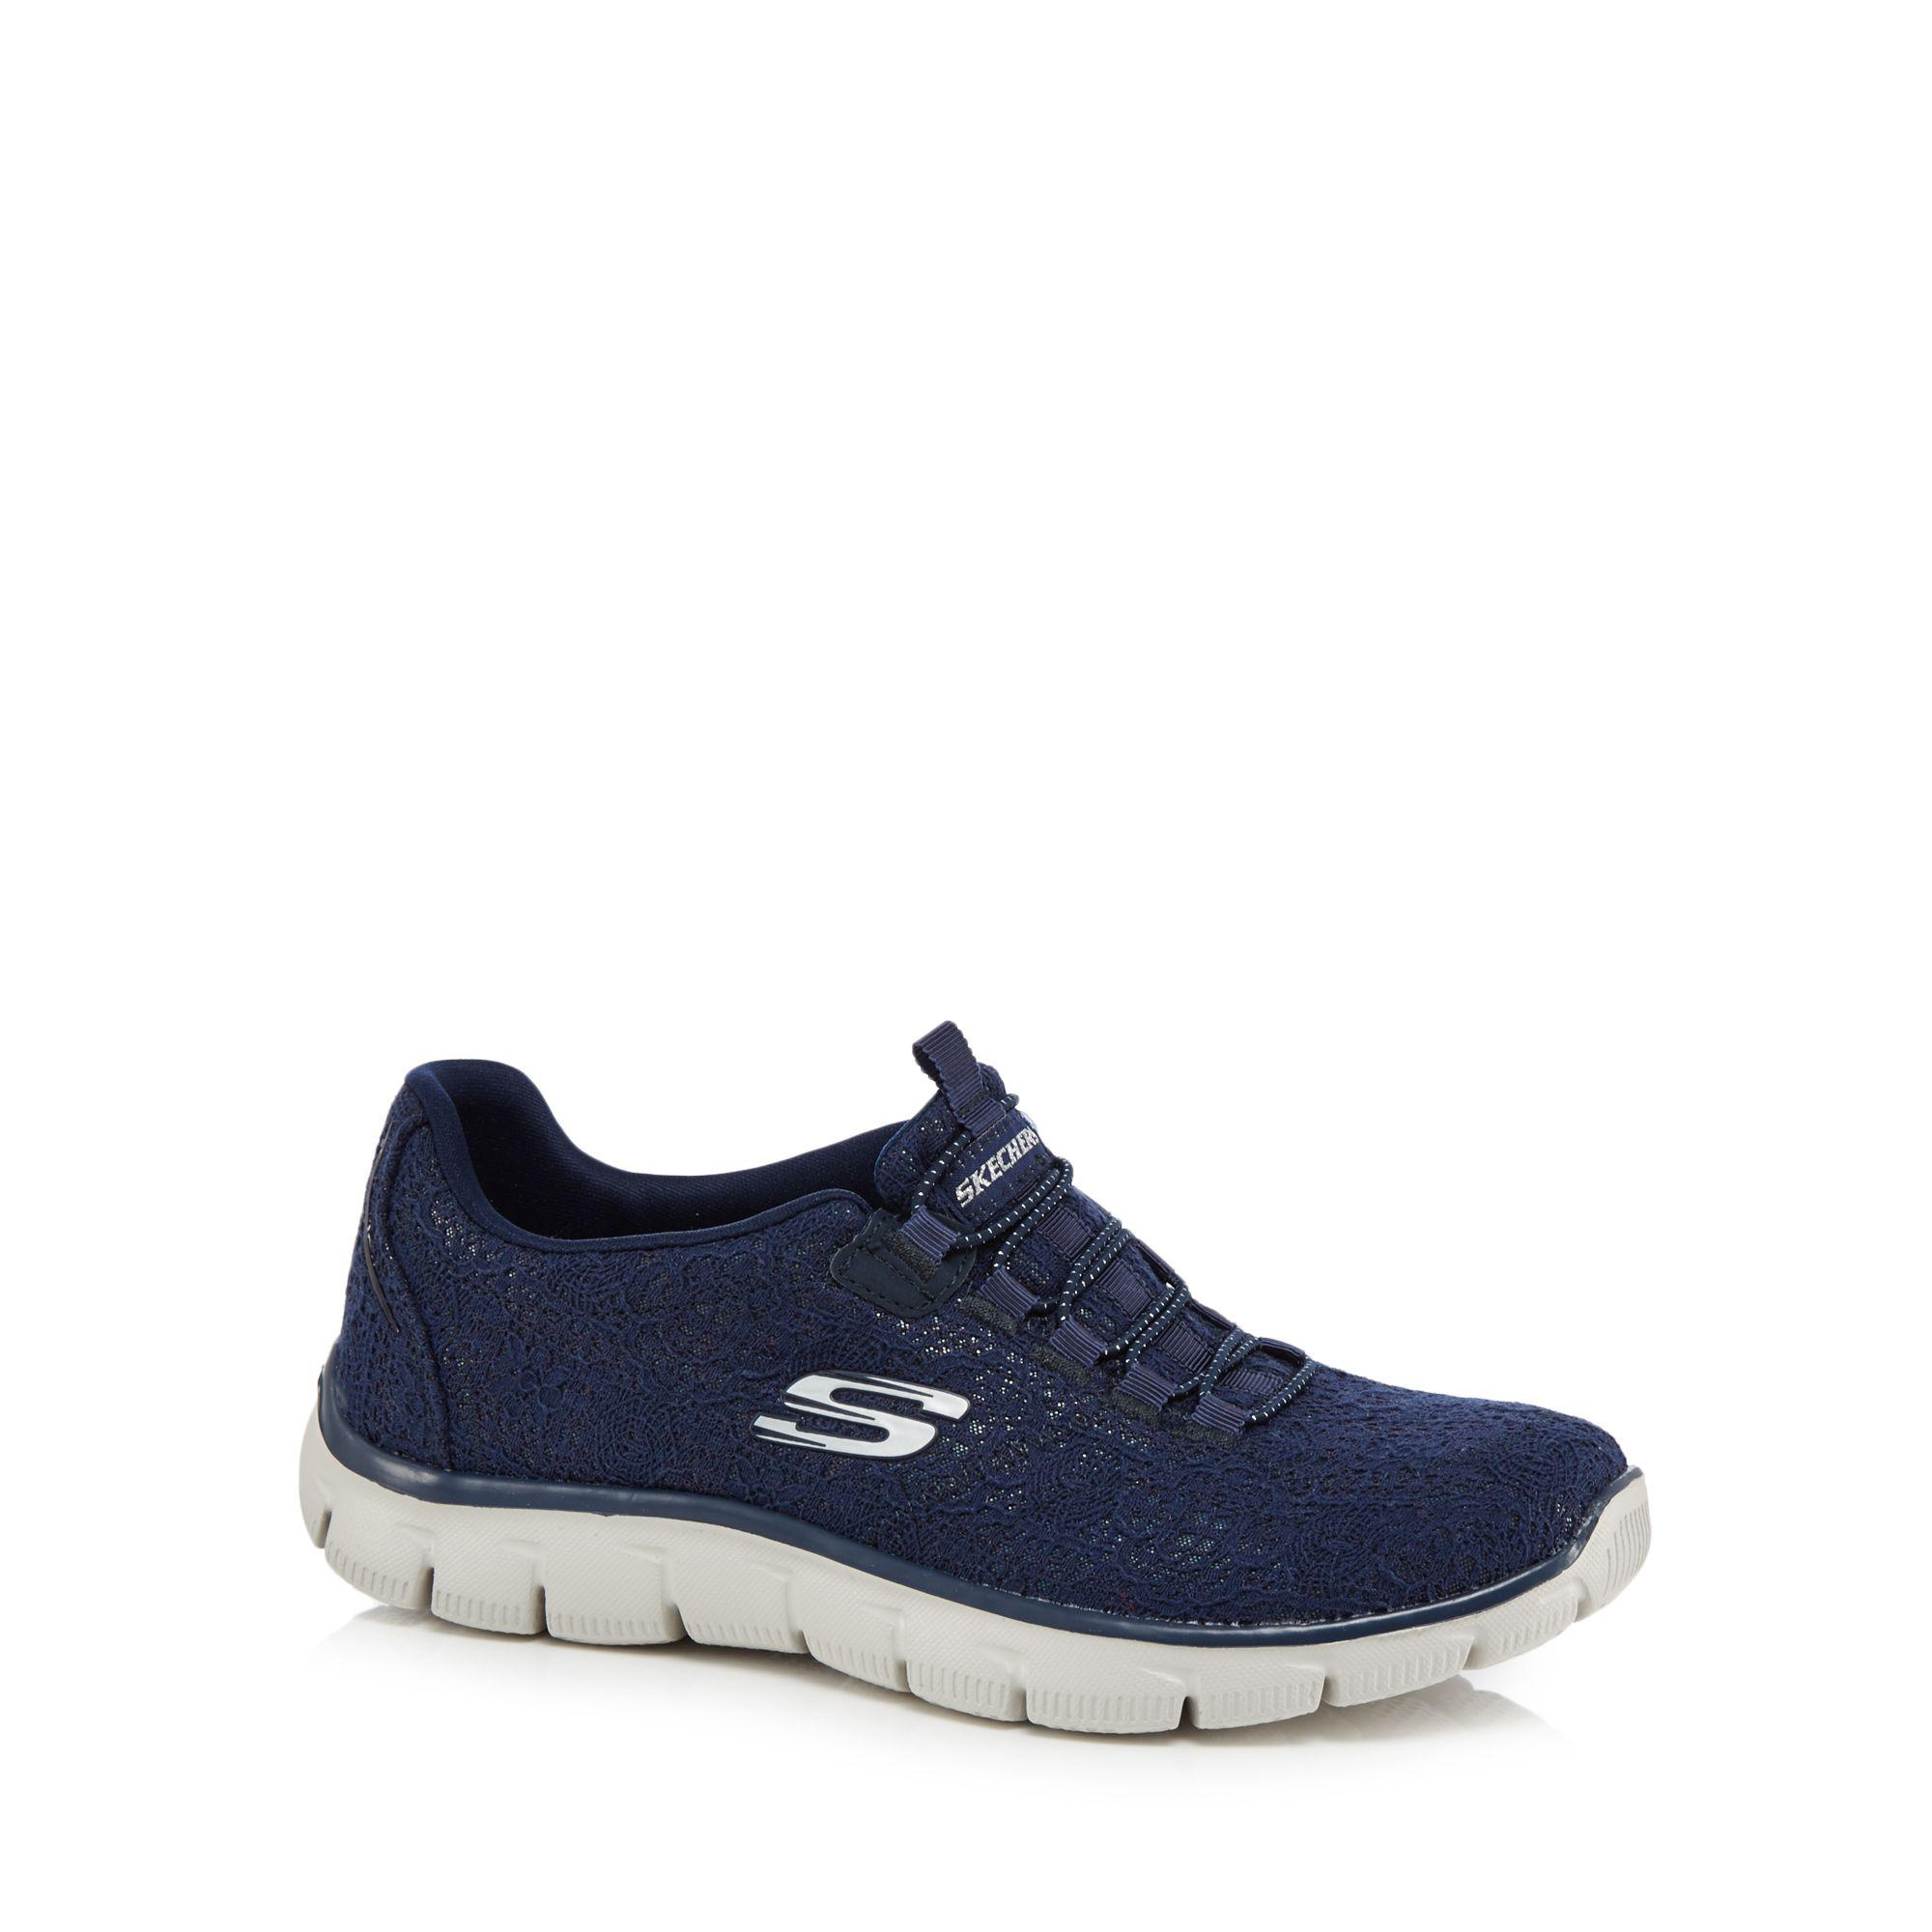 8964994a25fc Skechers Navy Knit  empire Spring Glow  Slip-on Trainers in Blue - Lyst